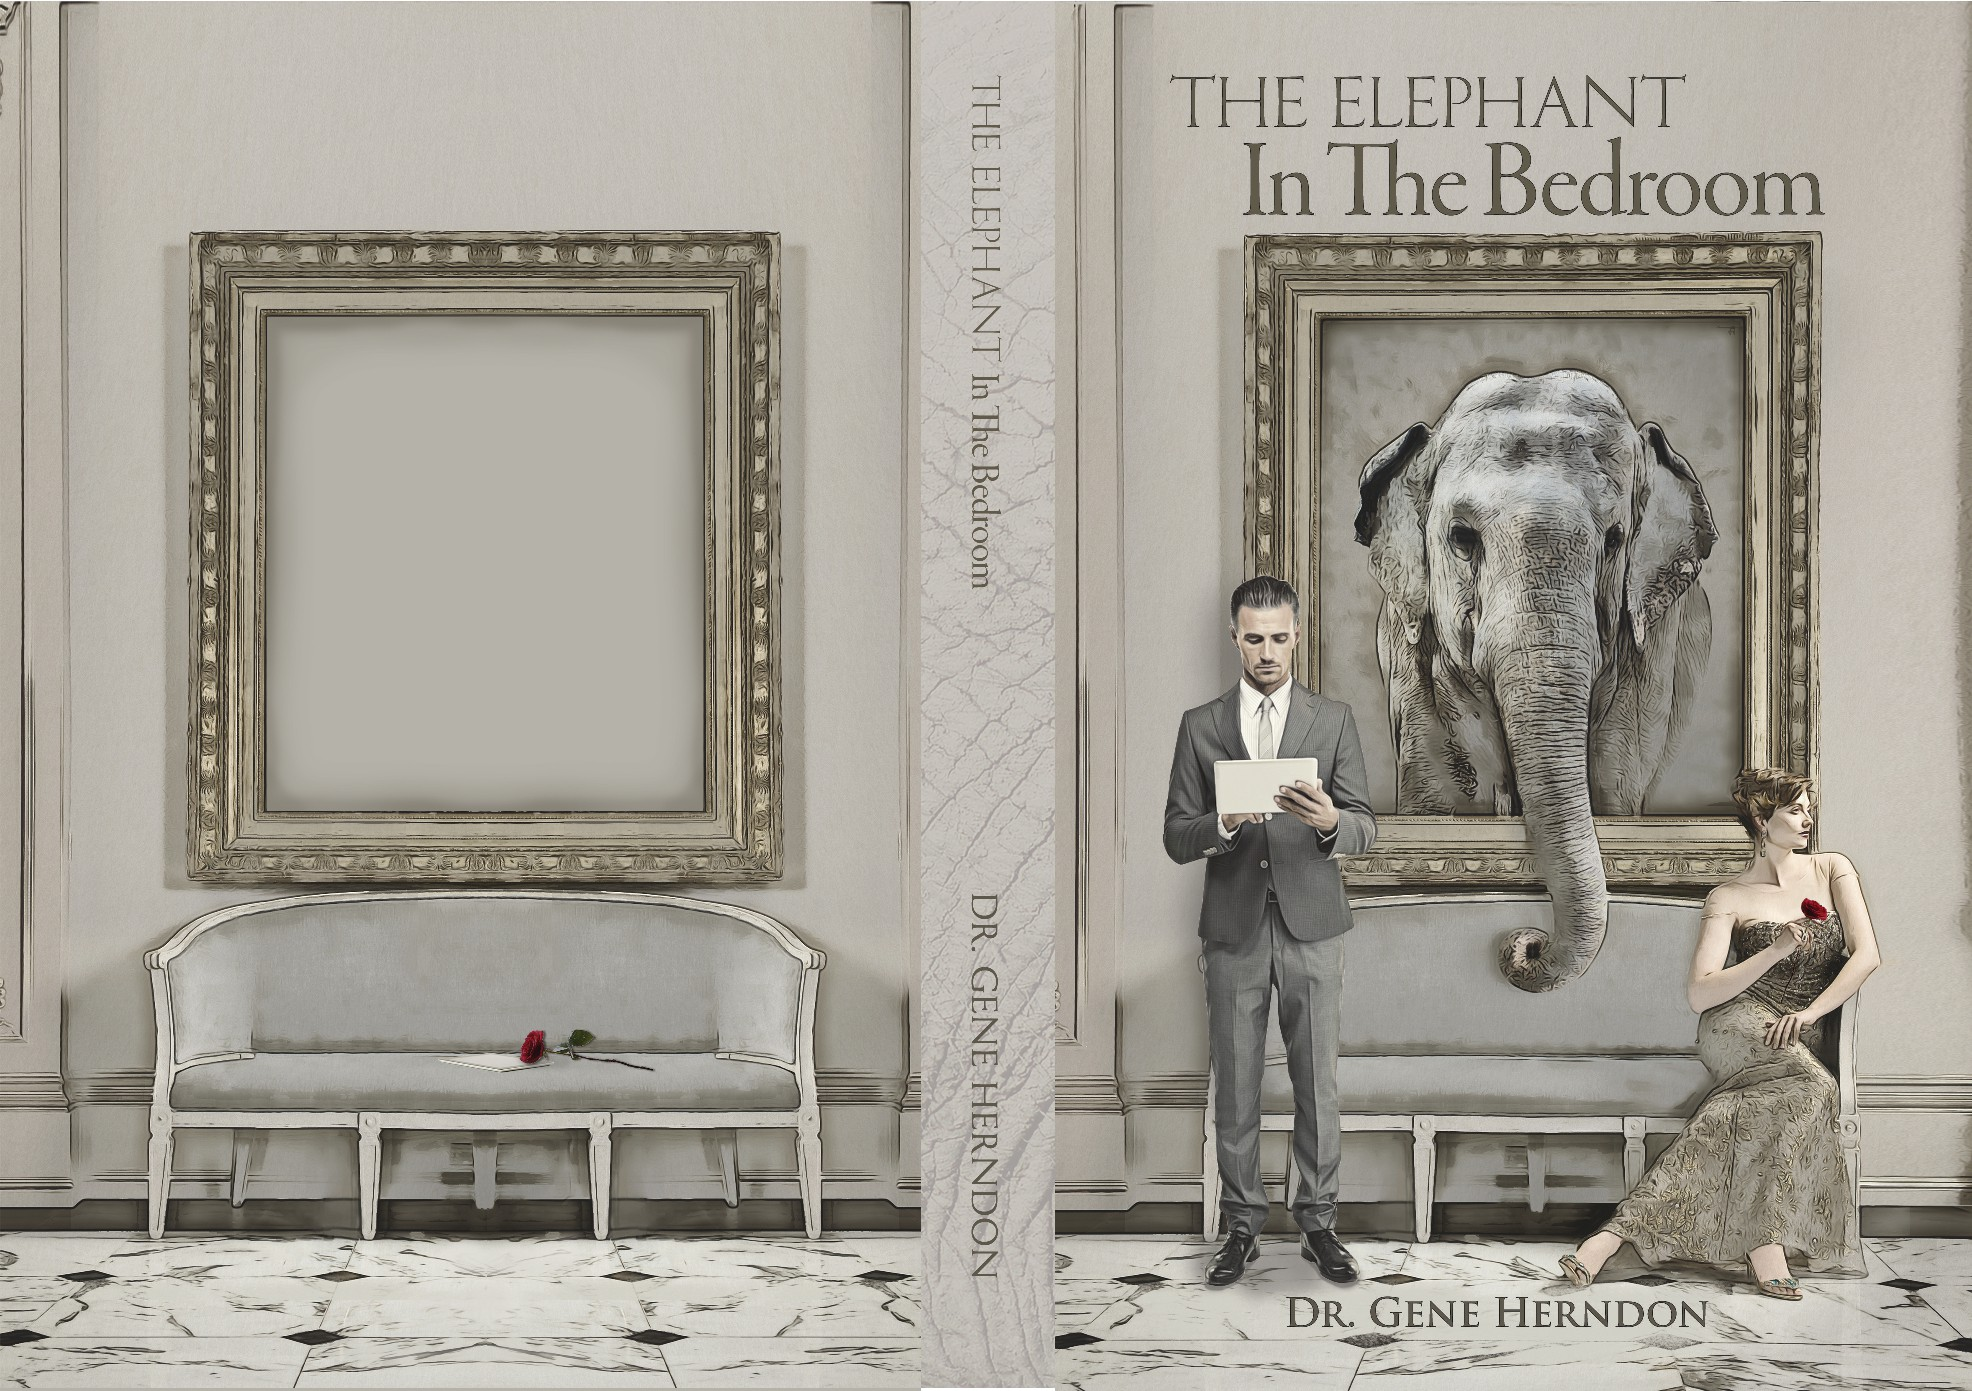 Book Cover Design for The Elephant in the Bedroon